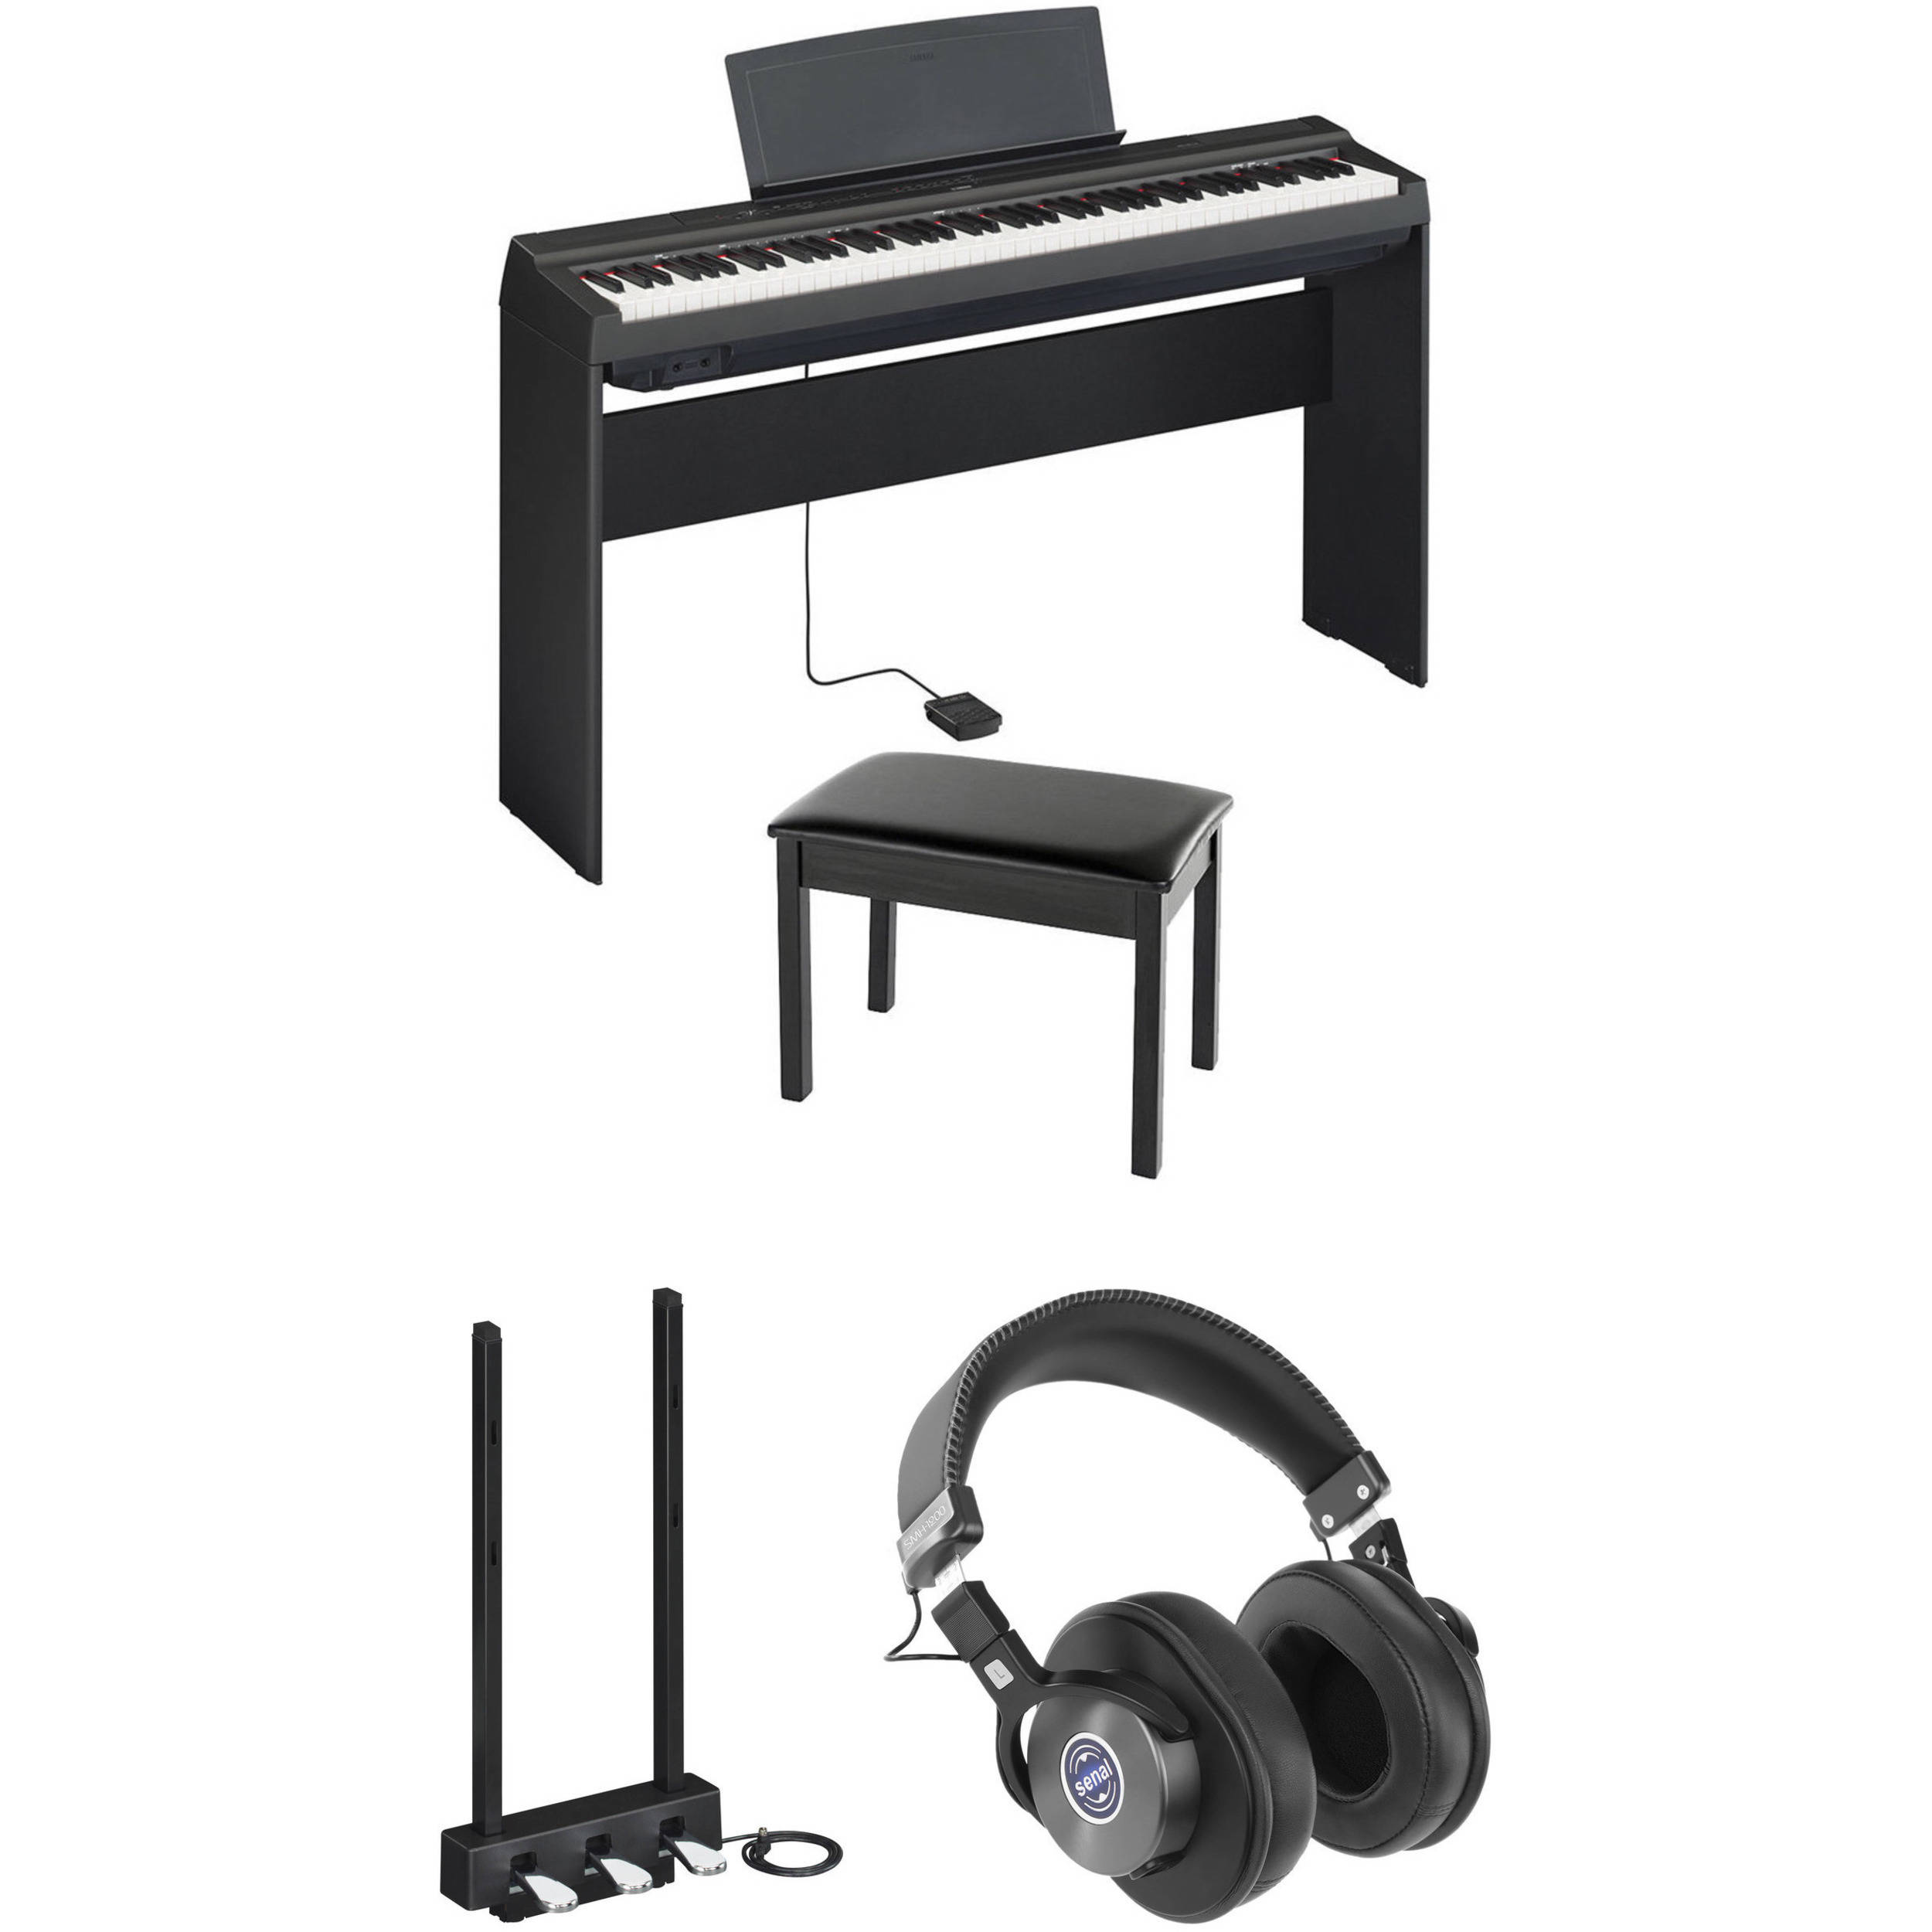 Wondrous Yamaha P 125 Digital Piano Performance And Monitoring Kit Black Gmtry Best Dining Table And Chair Ideas Images Gmtryco